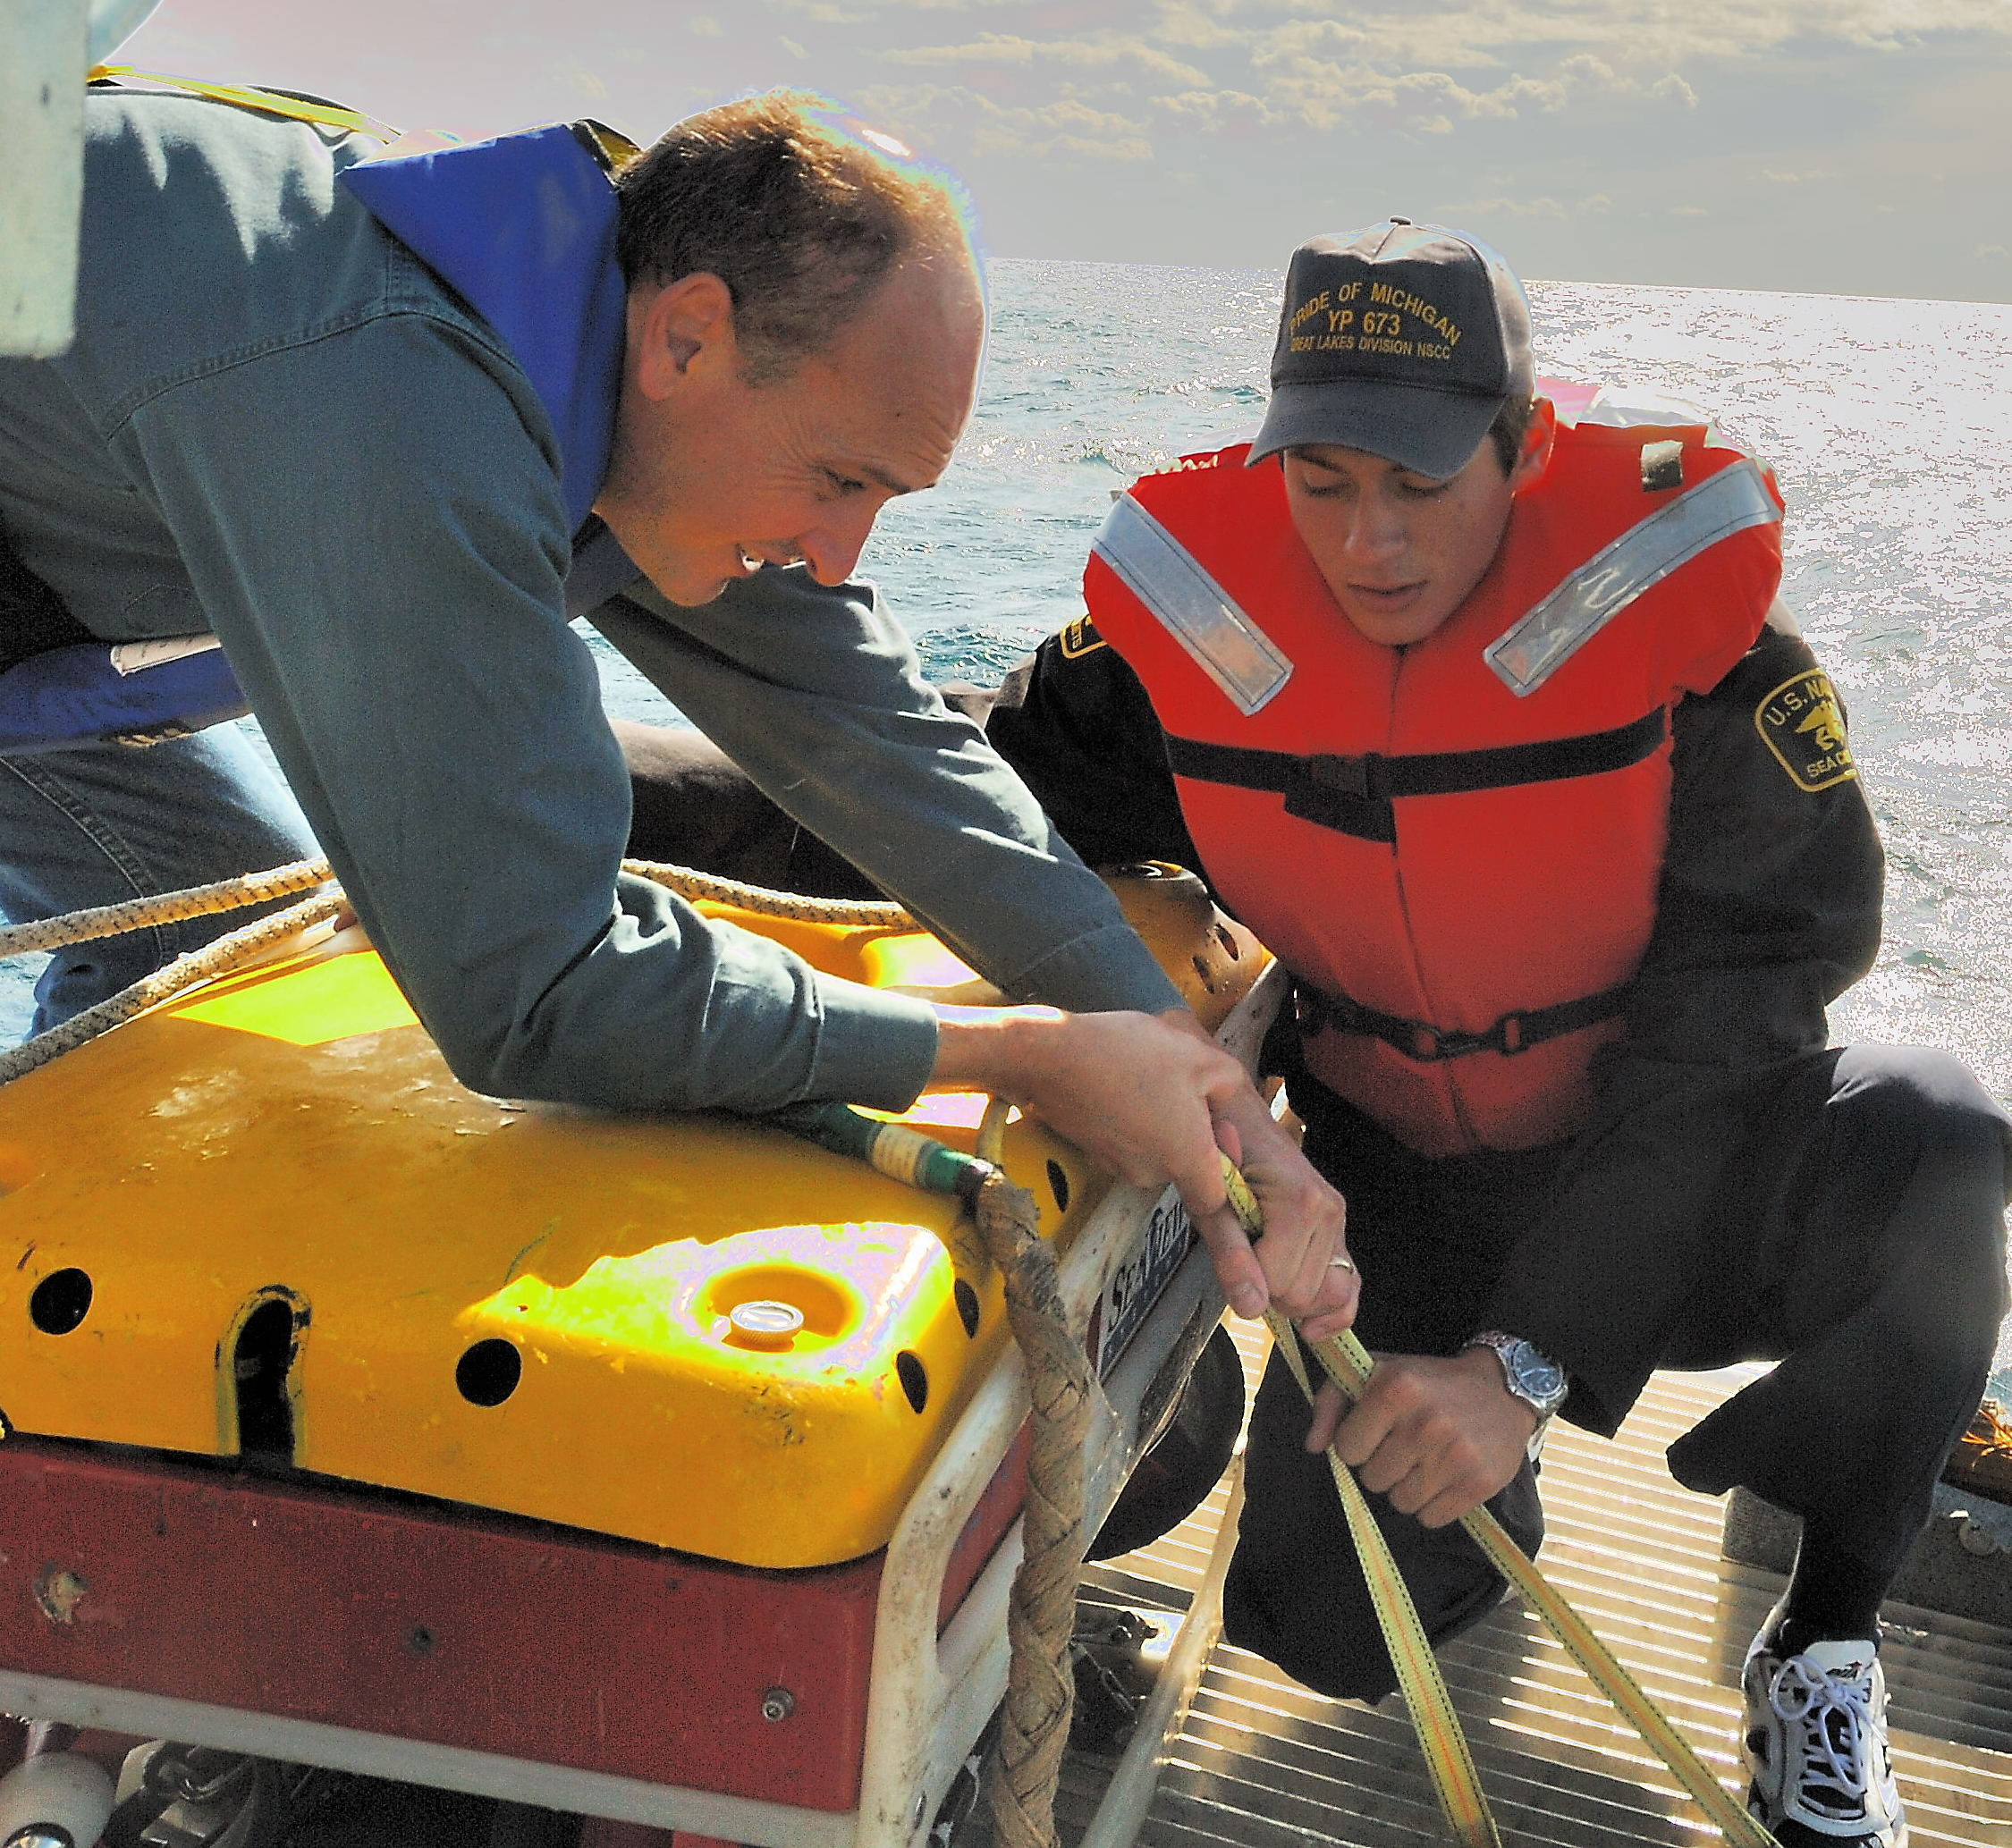 CADET SOGGE AND TECHNICIAN MATTHEW COOK SECURE ROV UNIT.jpg